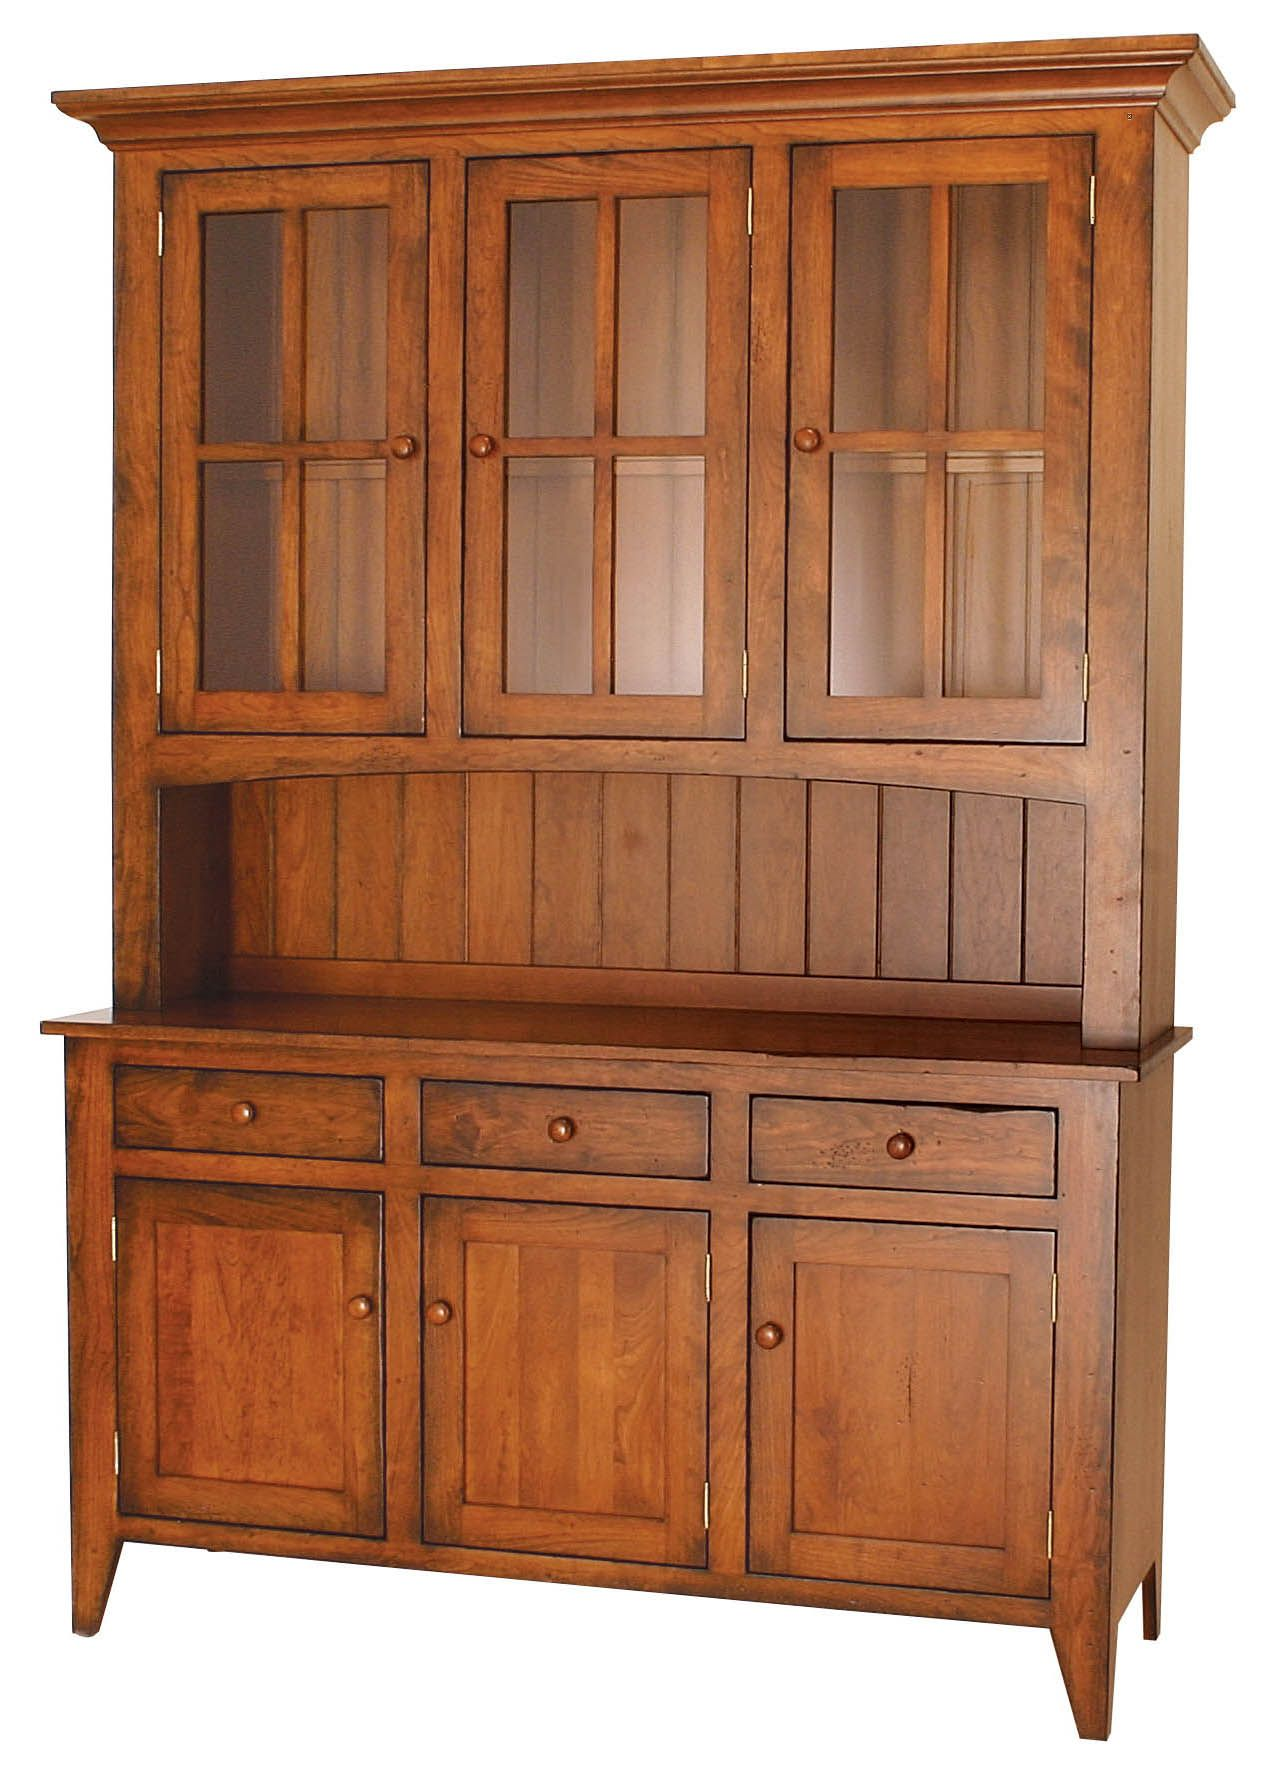 Ashville Farmhouse Cherry Wood Hutch | Amish Furniture | Solid Wood Mission  Shaker Furniture | Chicago